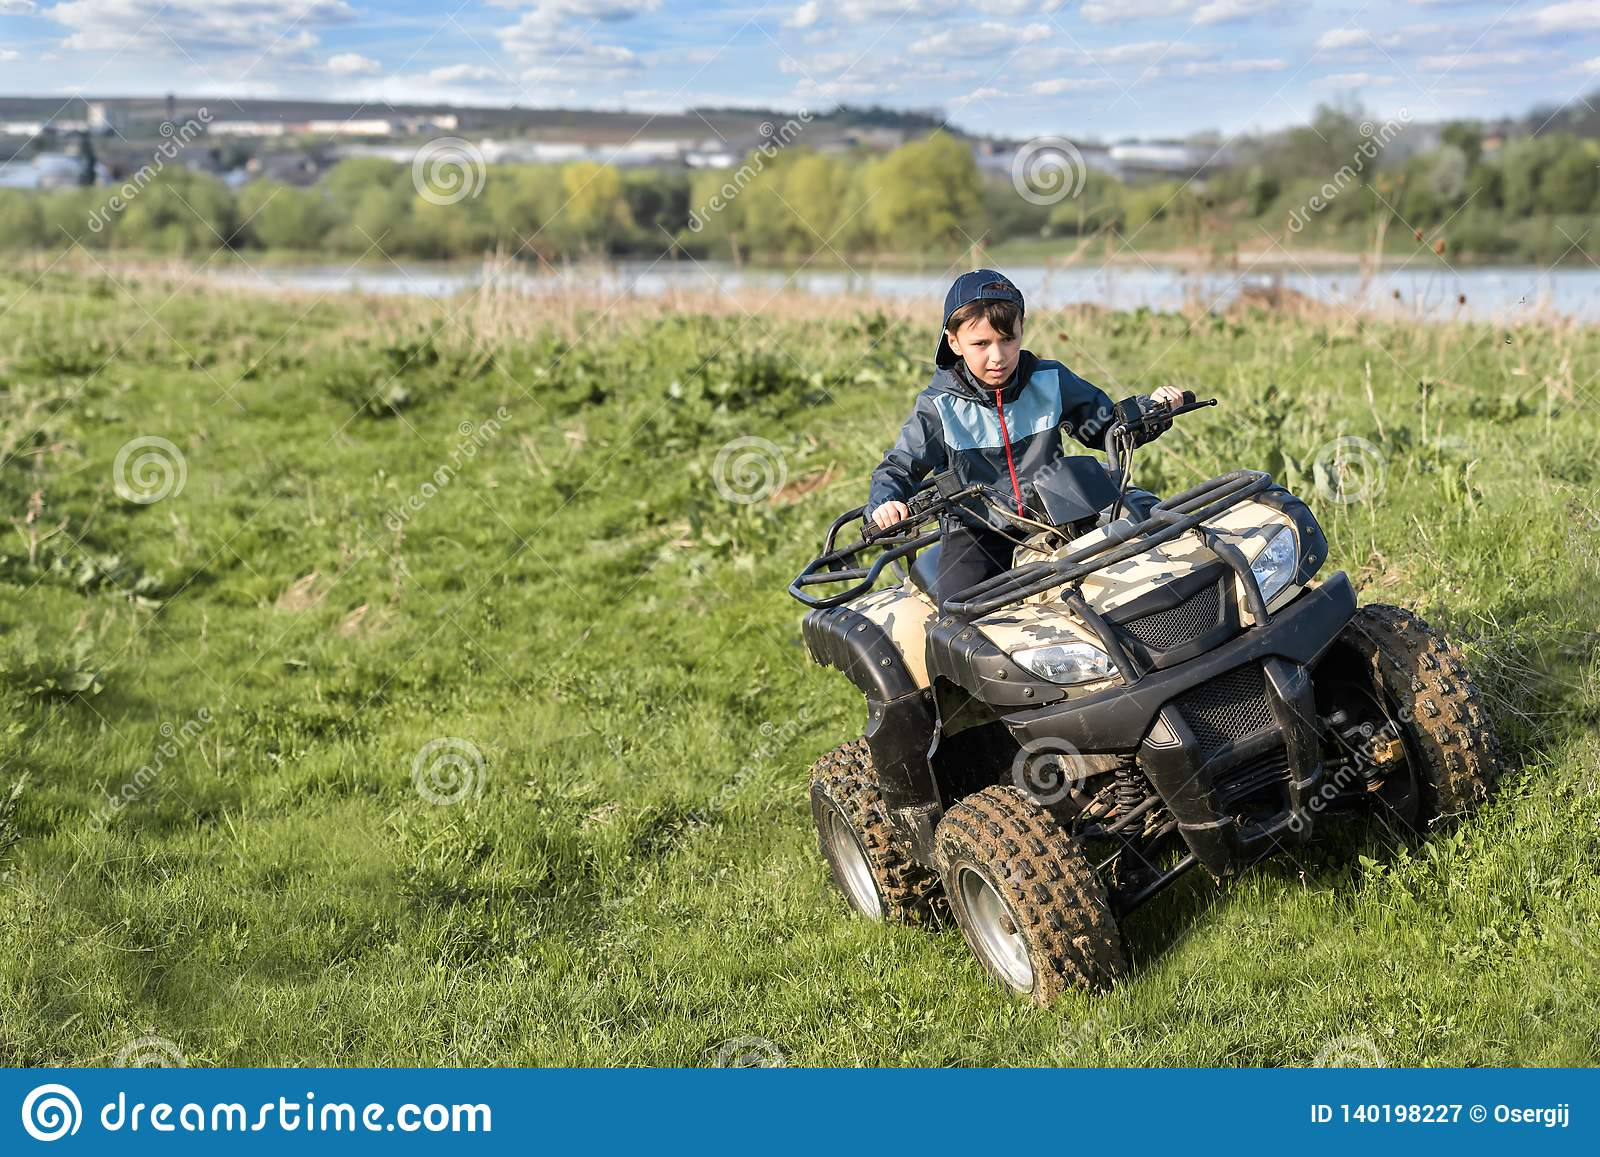 The boy is traveling on an ATV